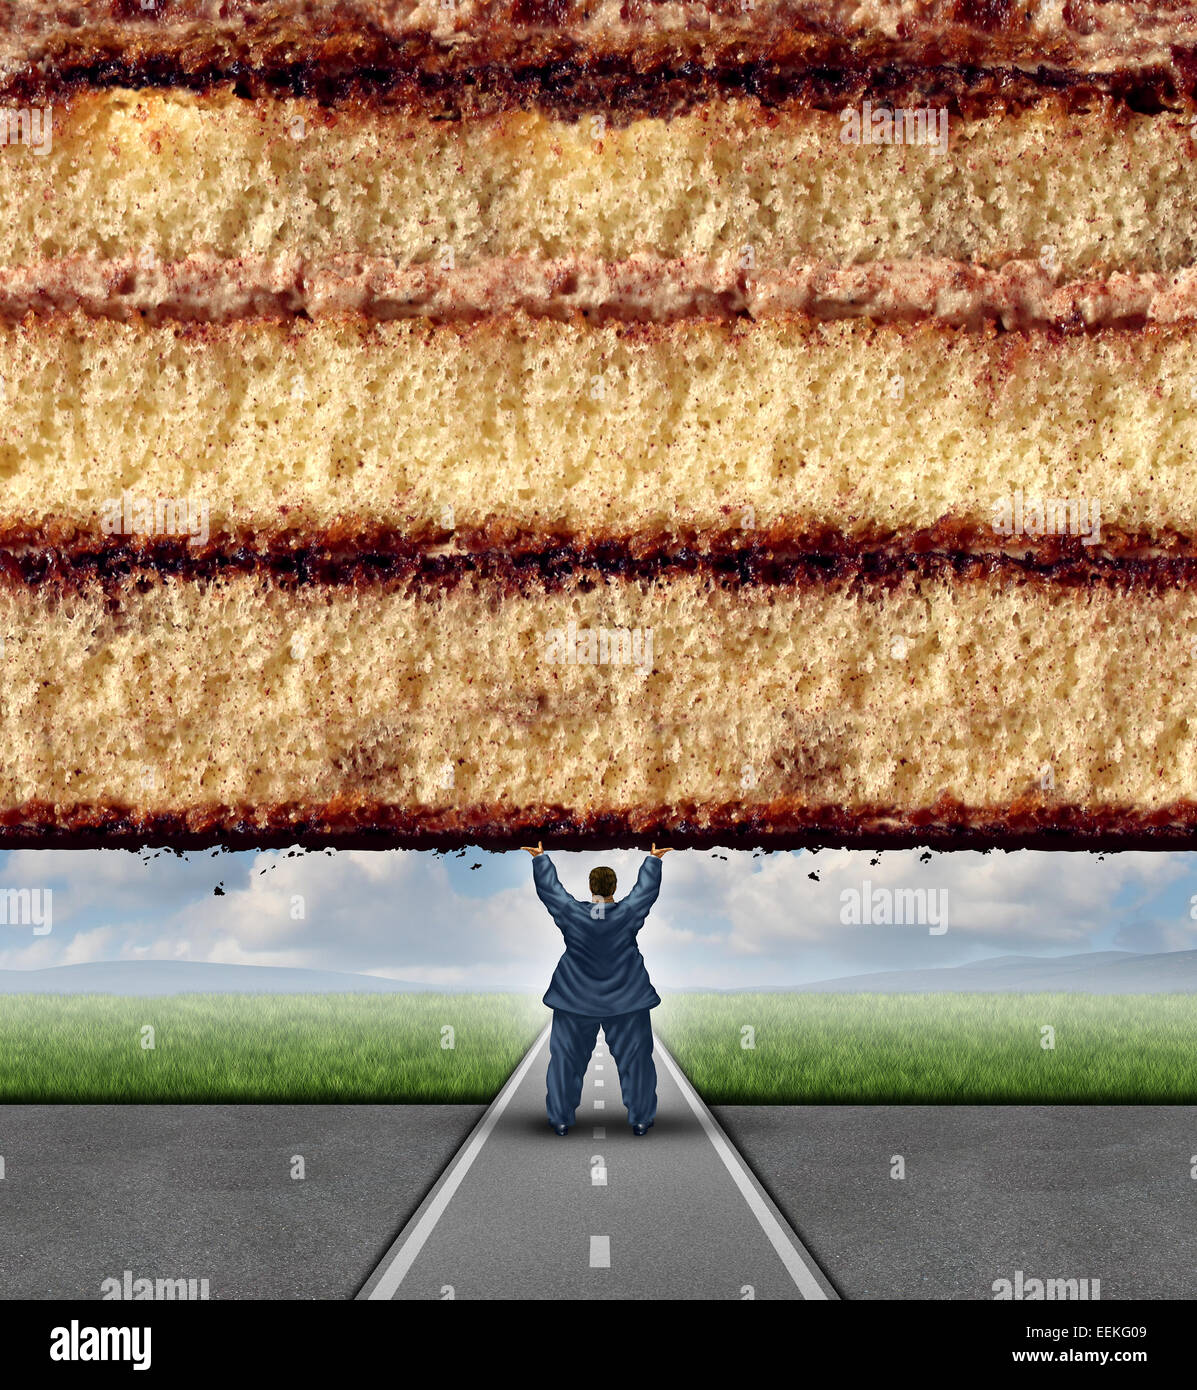 Get fit concept and losing weight fitness and health care metaphor as an overweight man lifting a wall made of cake - Stock Image